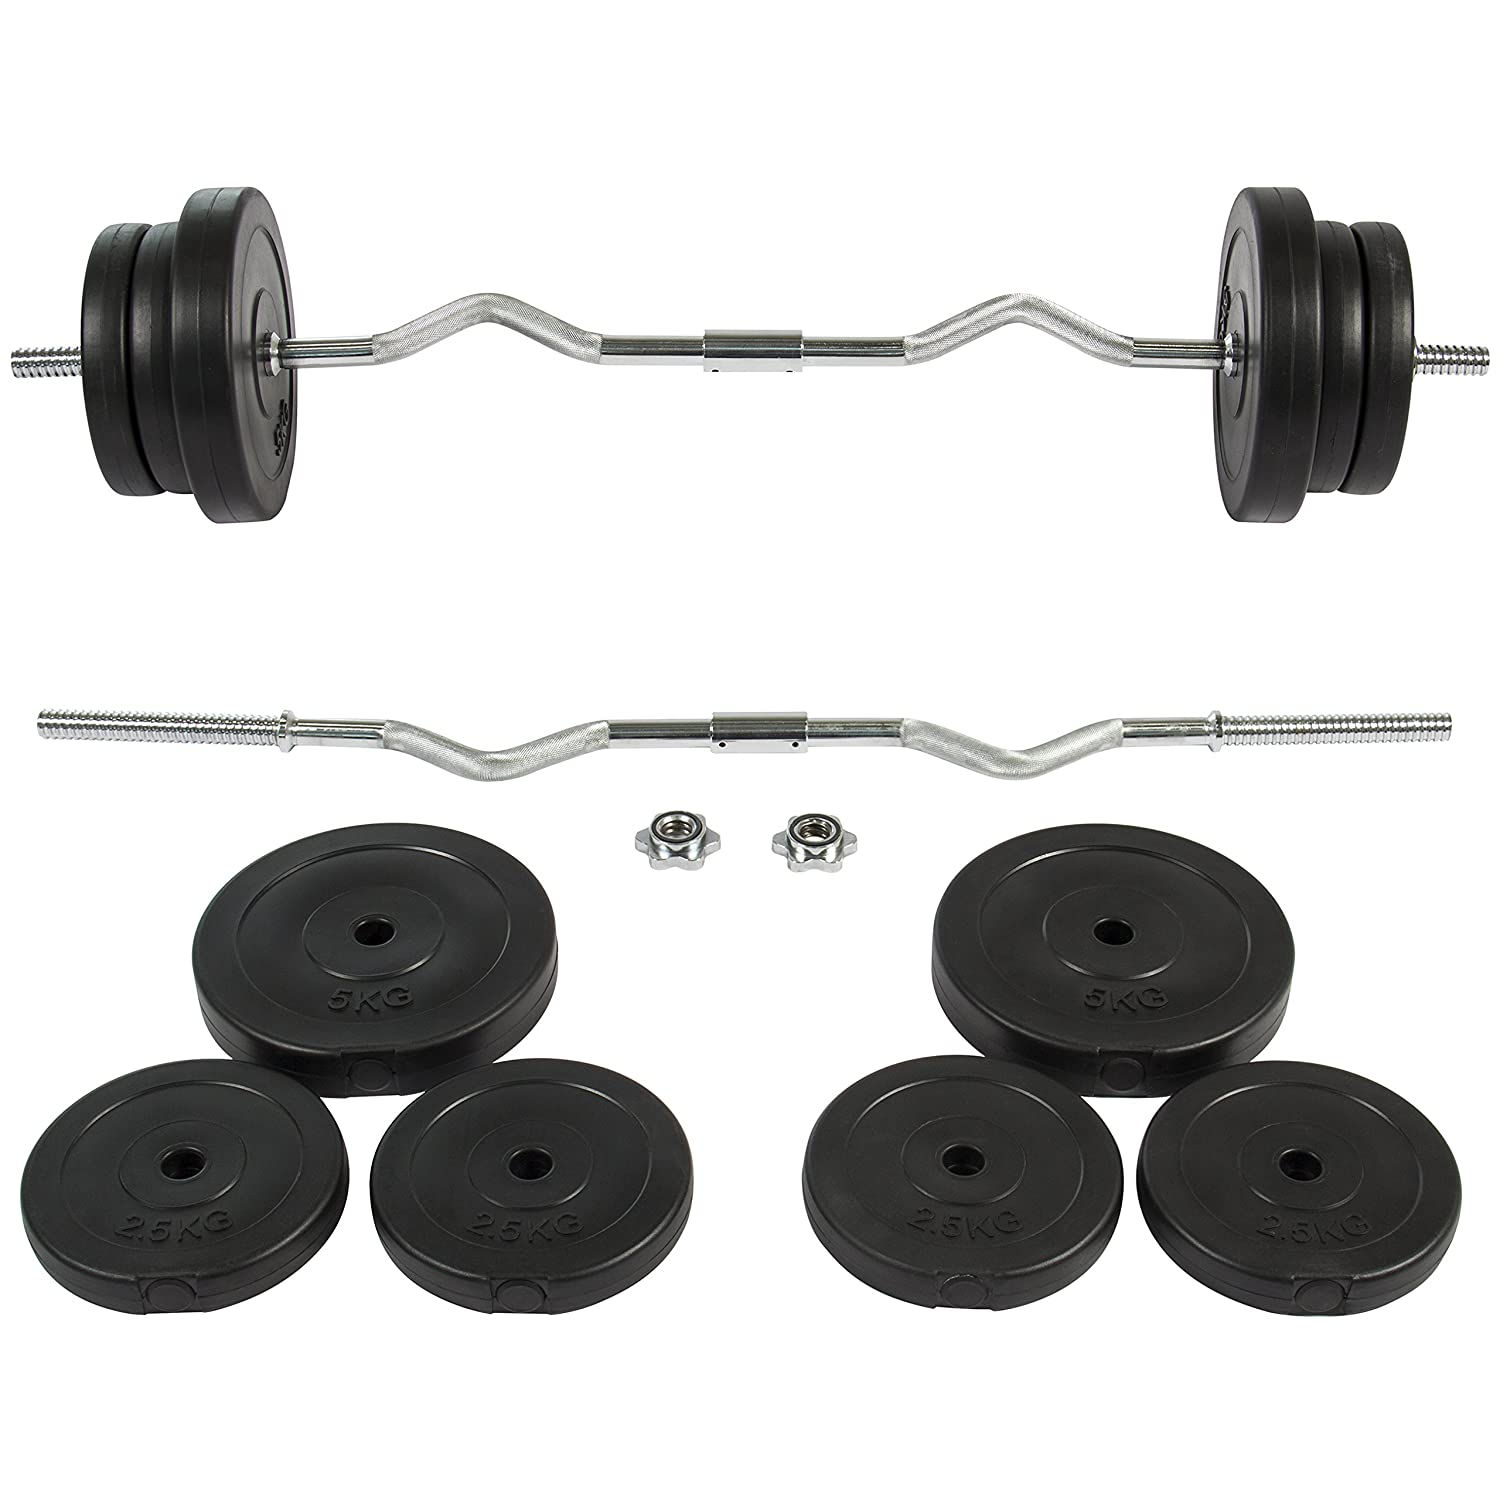 Best Choice Products 55lb 1in EZ Curl Bar Barbell Weight Set w/ 2 Lock Clamp Collars, Plates - Silver/Black